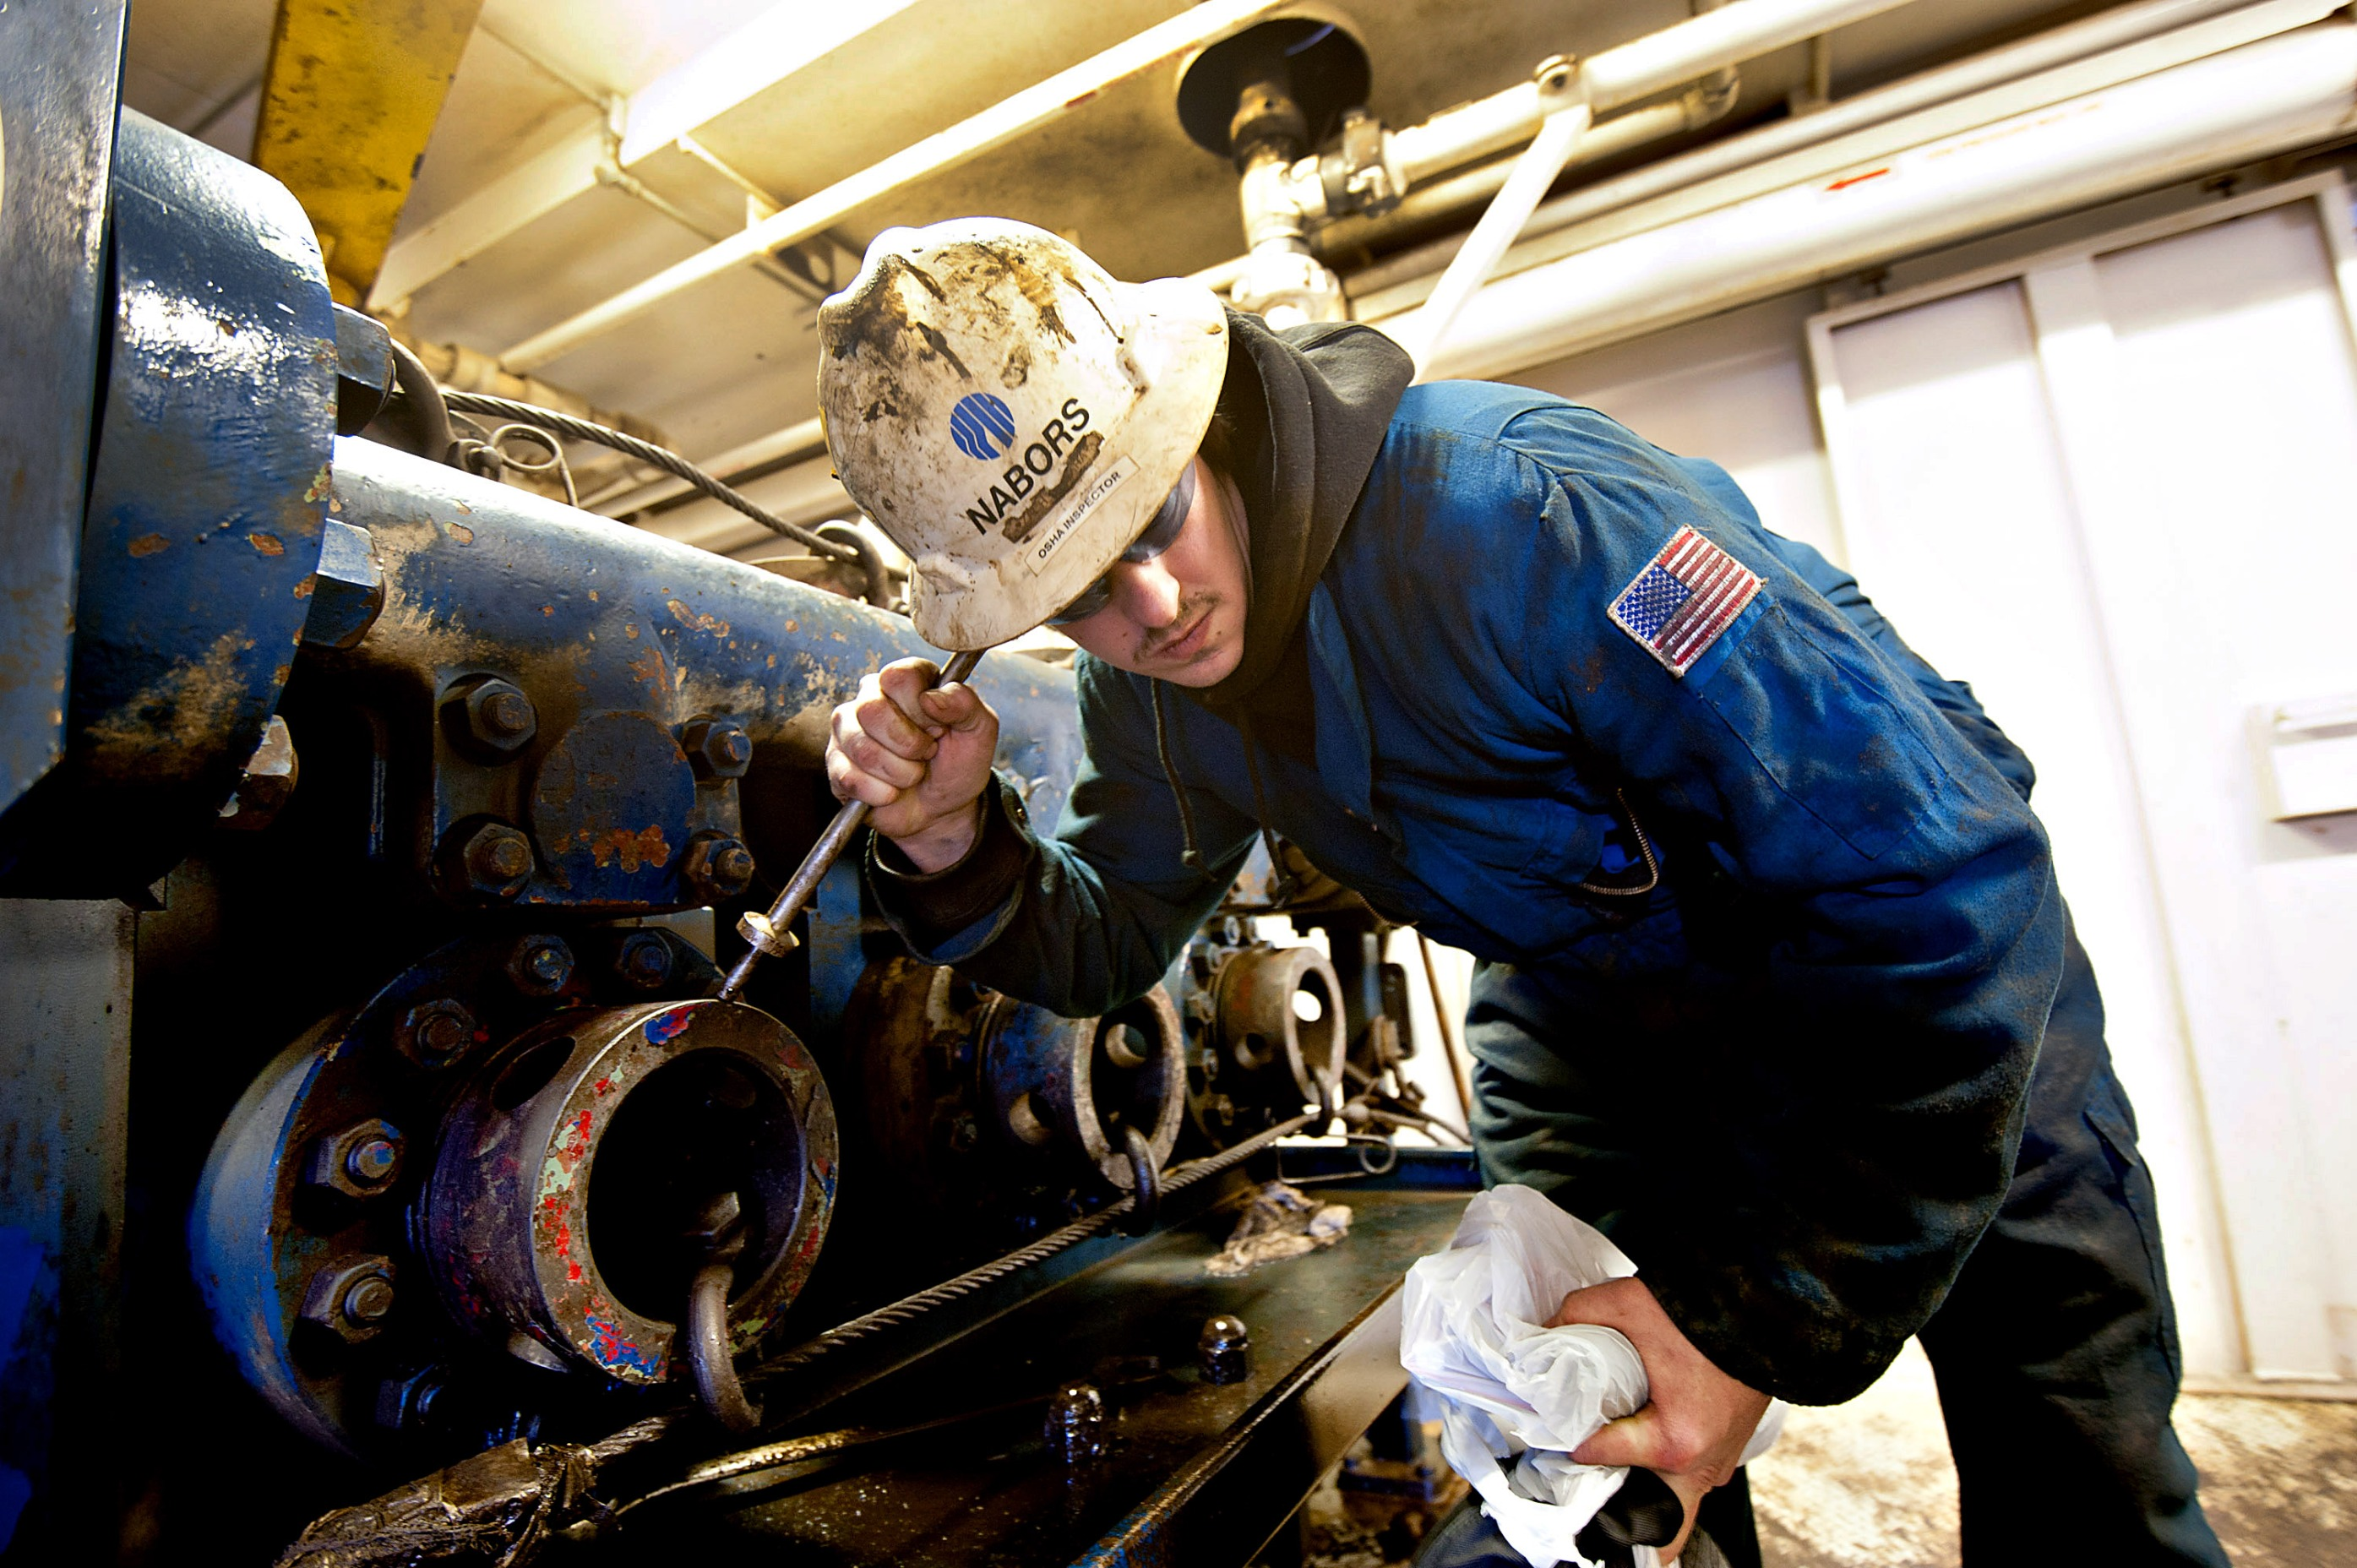 Nabors Industries Ltd. driller Zach Omeara uses a metal rod to listen to the internal operation of a drilling fluid circulation pump during a walk-through of a Nabors crude oil drill rig contracted by Fidelity Exploration & Production Company, a subsidiary of MDU Resources Group Inc., outside New Town, North Dakota, U.S., on Saturday, Feb. 11, 2012.  Photographer: Daniel Acker/Bloomberg